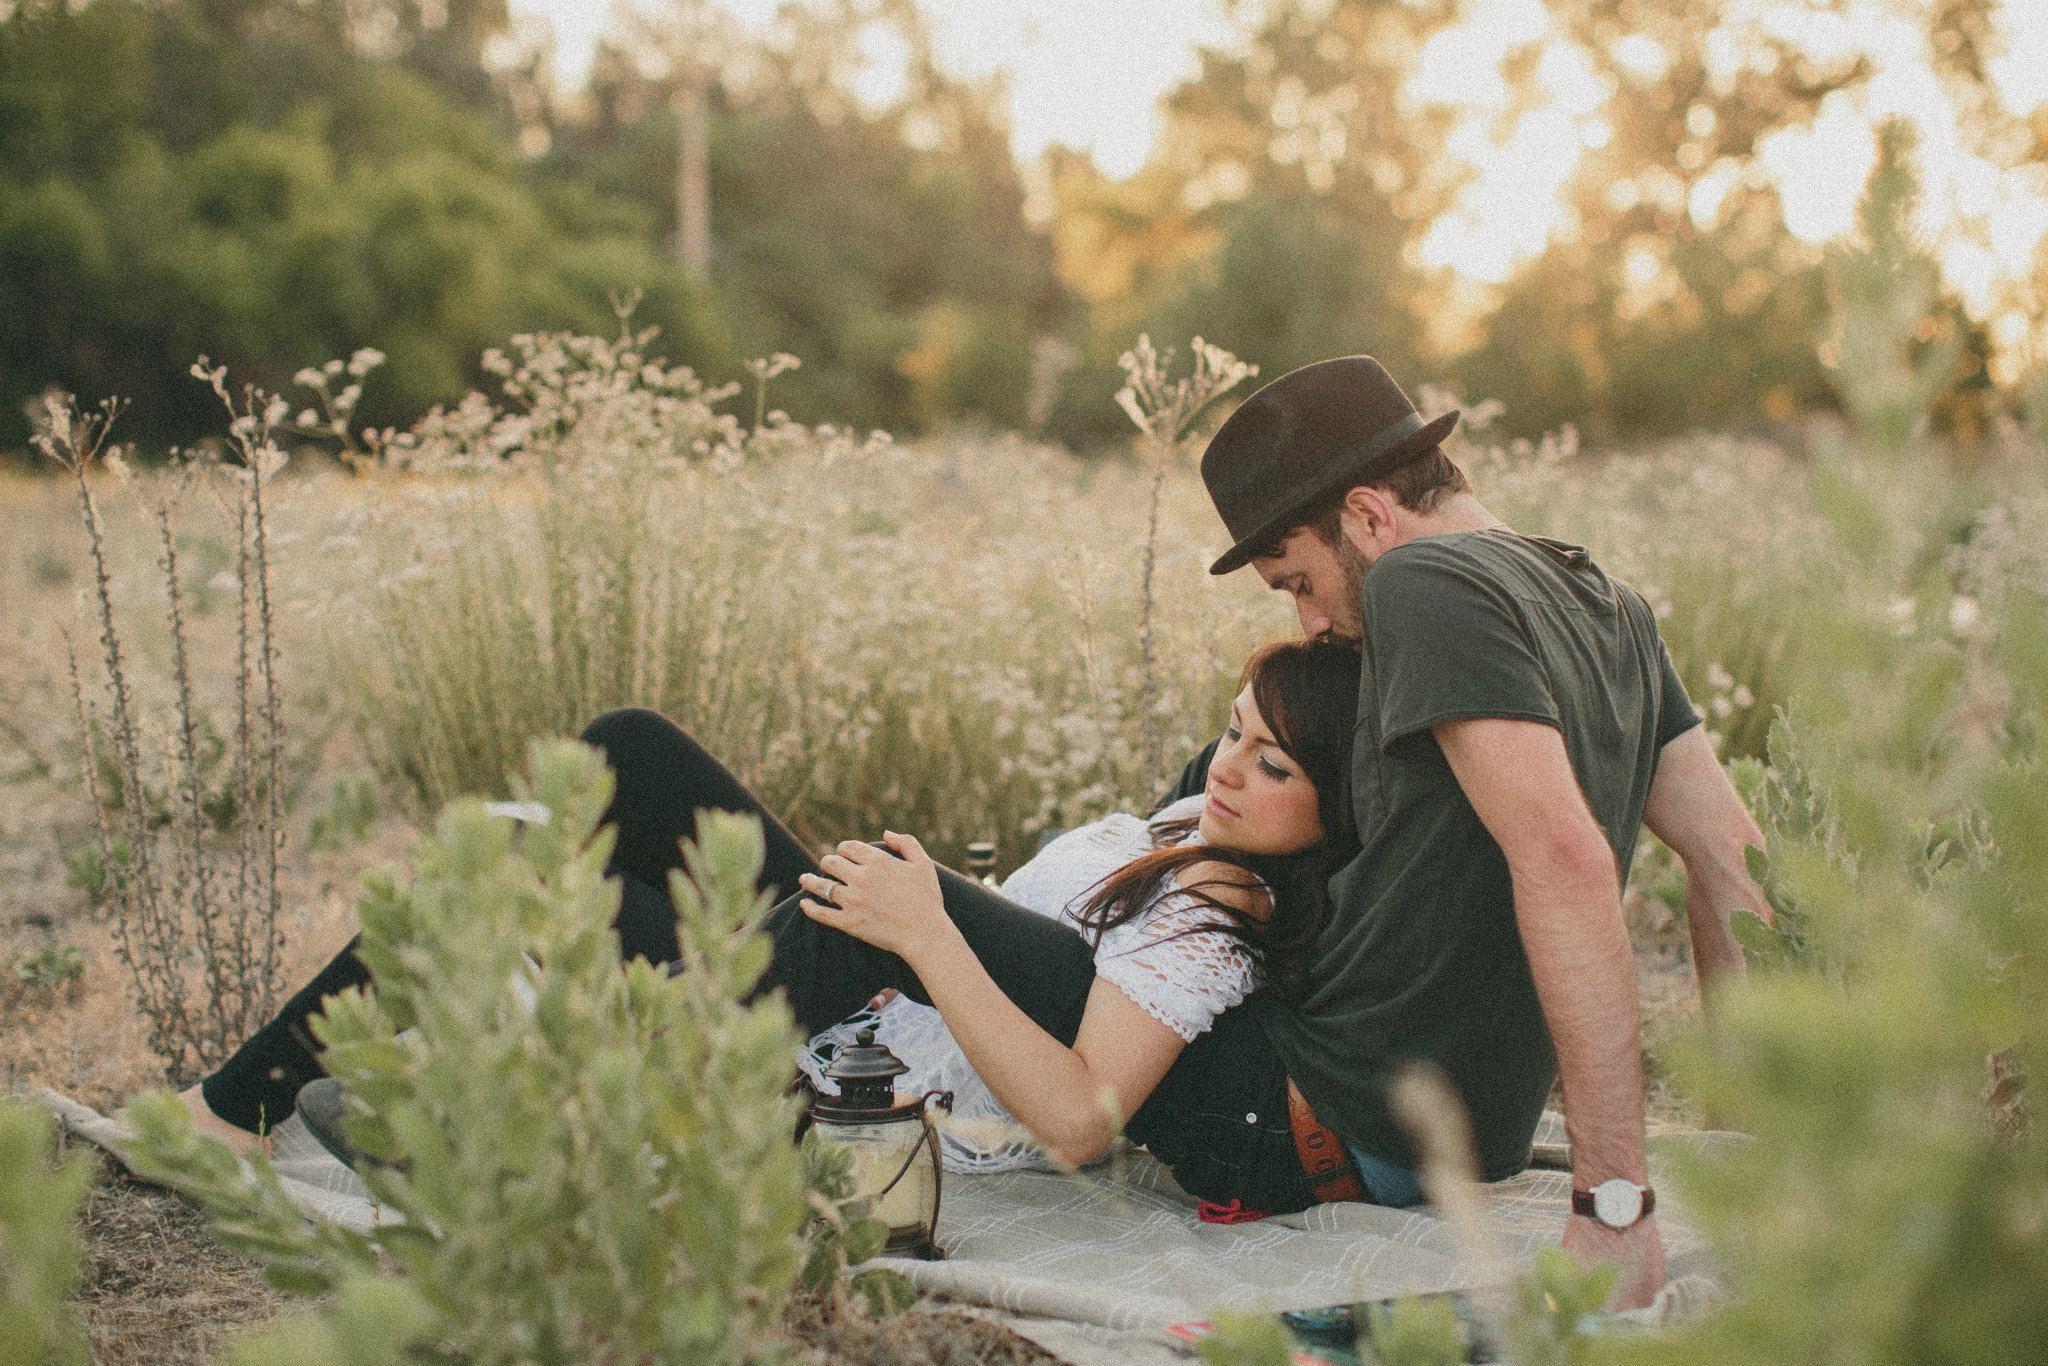 Hipster Wedding Photography: Hipster Picnic, Engagement Session. Style Wedding